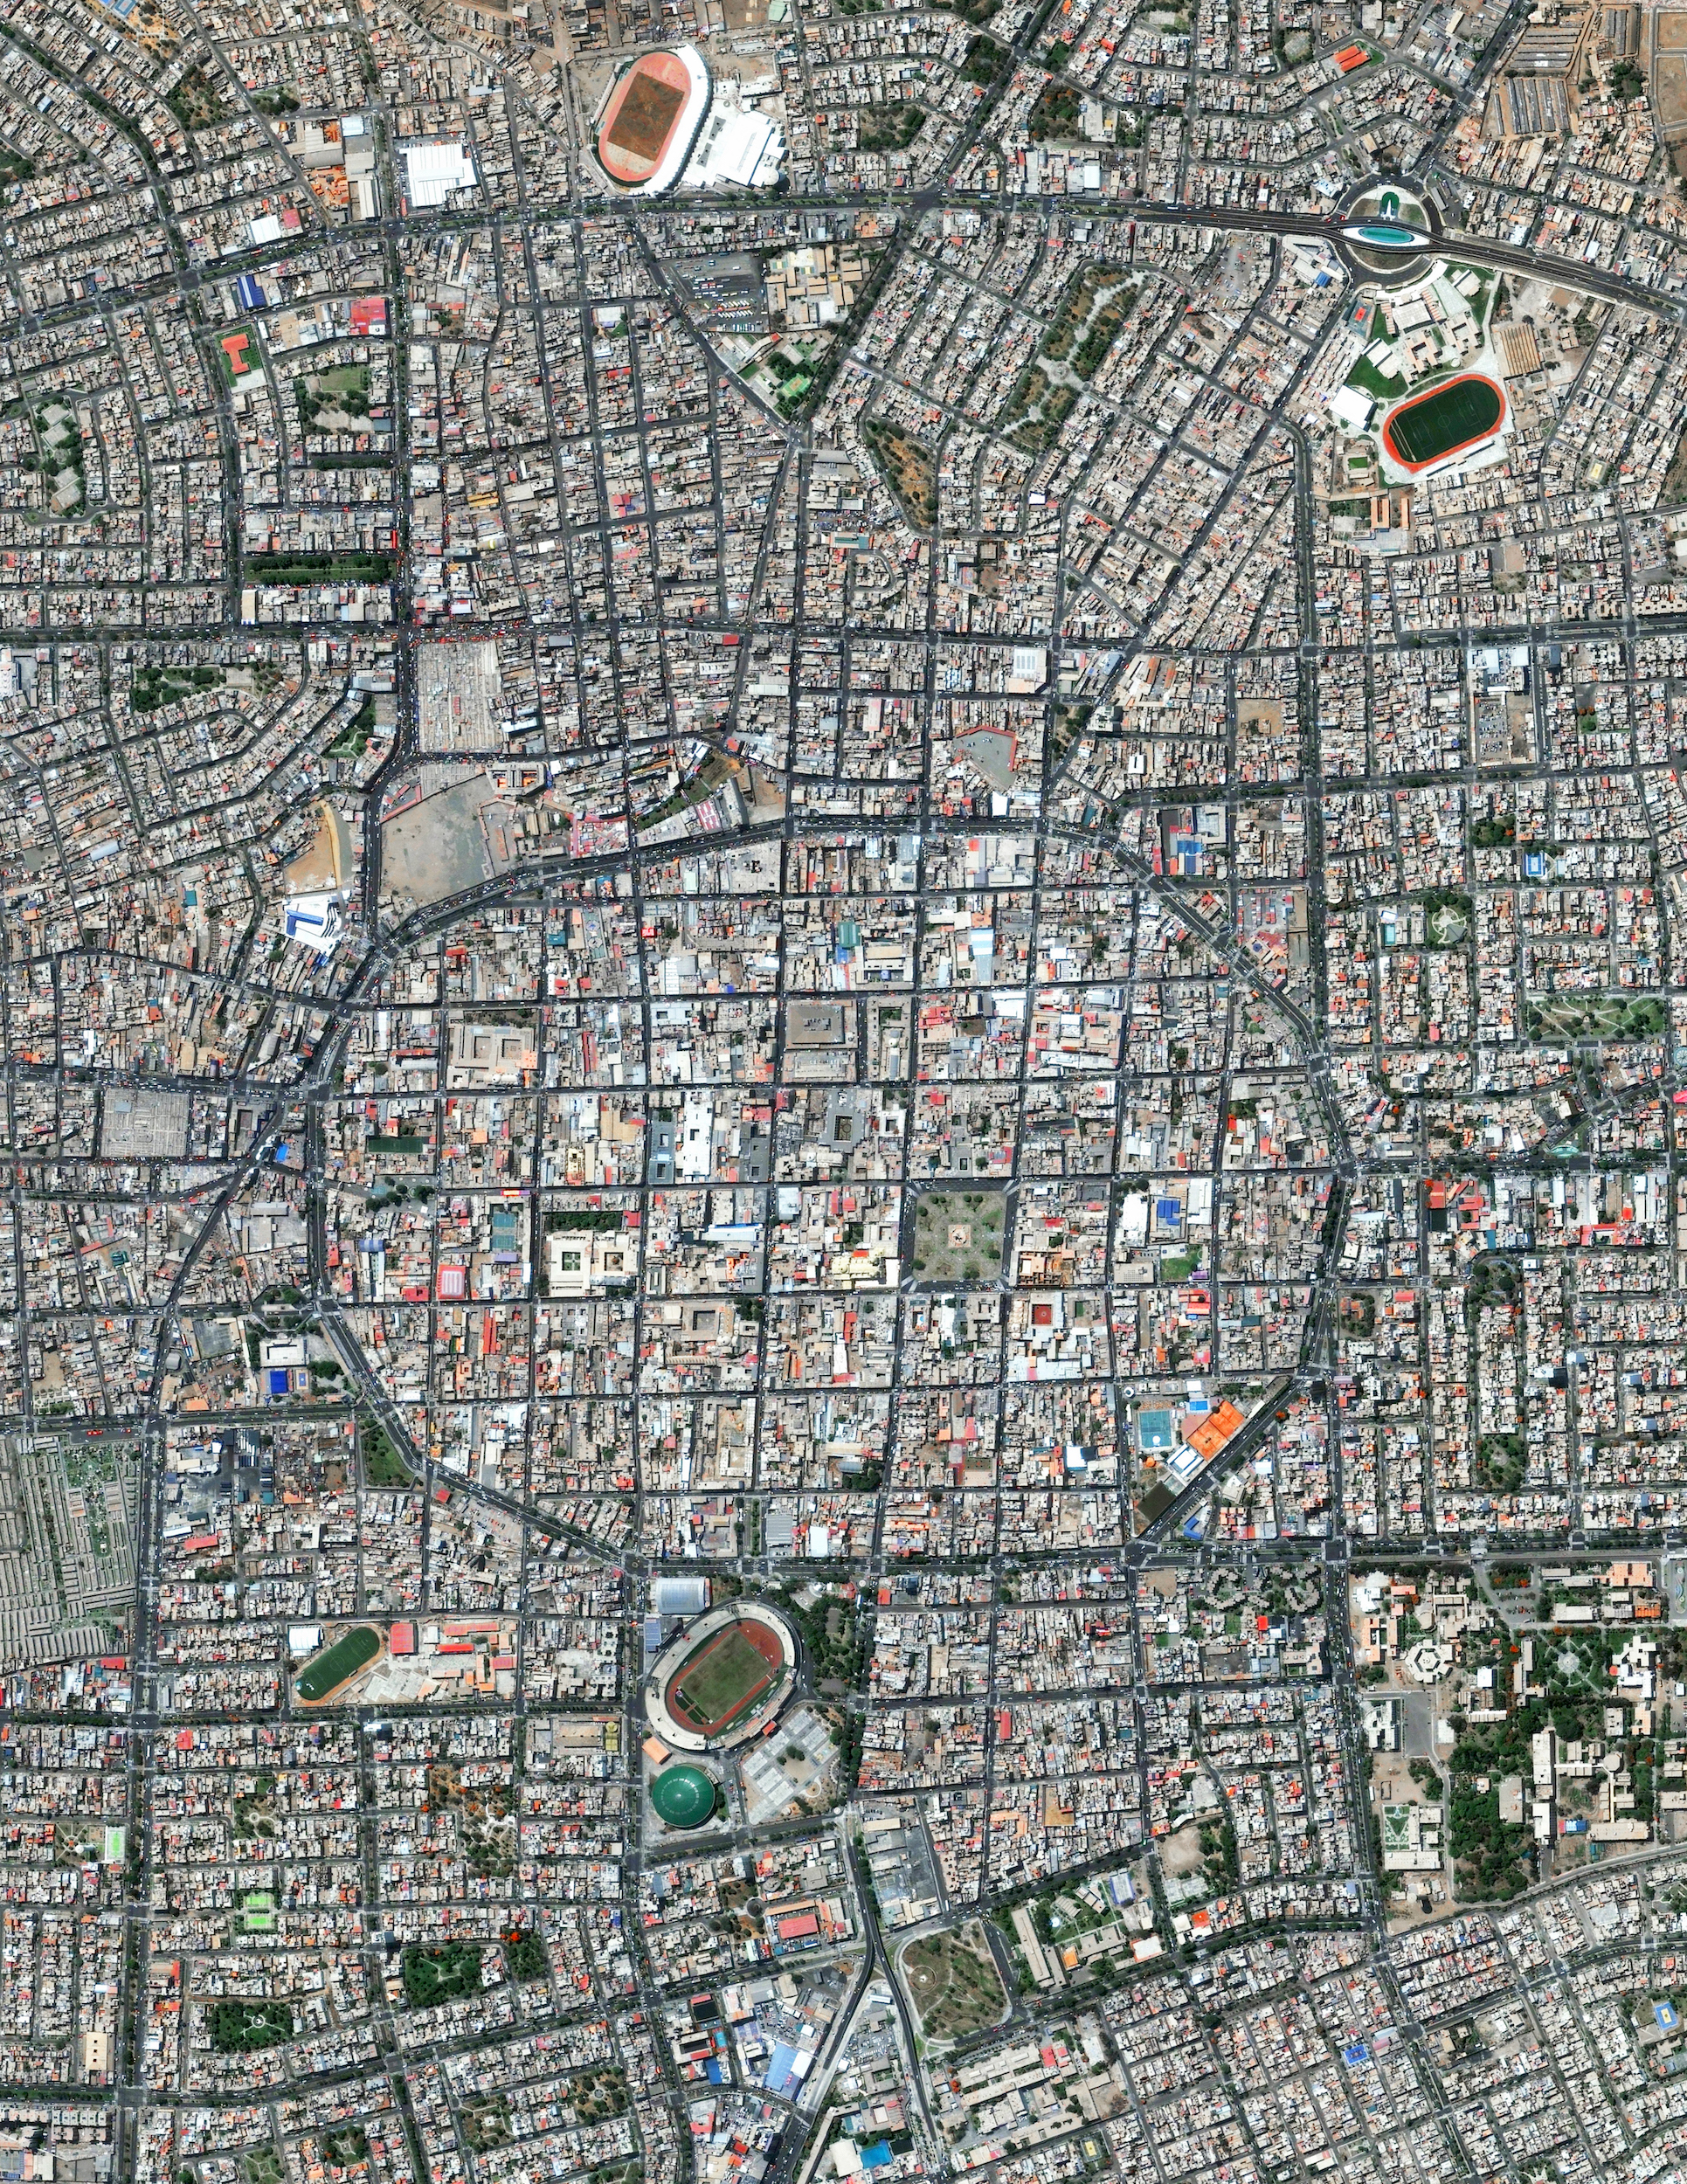 6/30/2016   Trujillo, Peru   8°6′43.2″S 79°1′43.68″W     Trujillo is the second largest city in Peru with slightly less than 800,000 residents in its urban area. España Avenue - the circular road that is visible at the center of this Overview - contains the city's monument area and also traces the historic outline of the defensive wall that was constructed around the city in 1786.